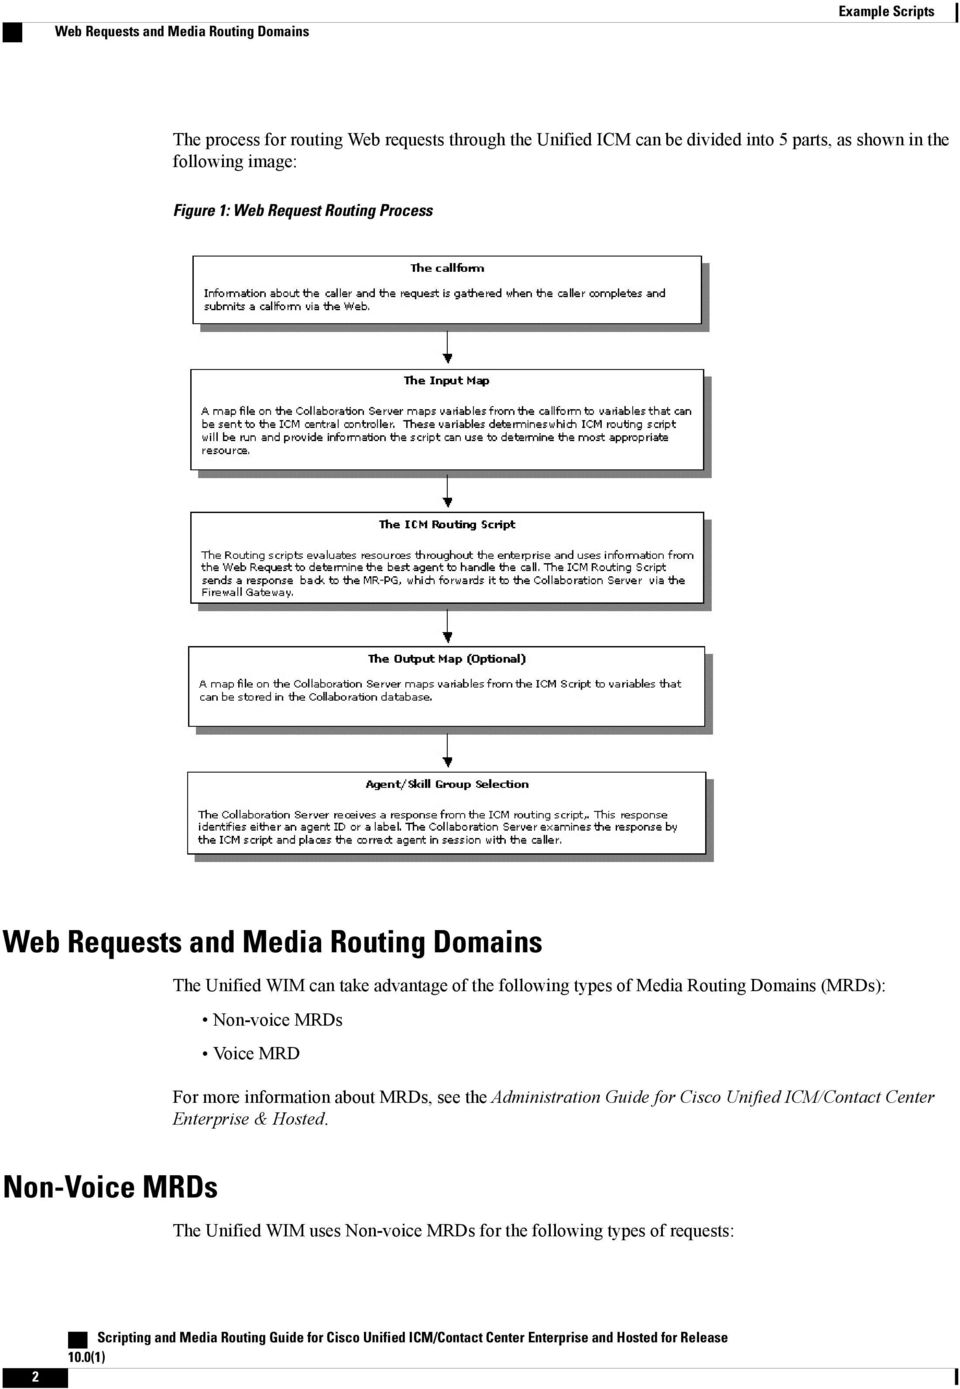 Overview of Web Request Routing Through Unified ICM - PDF